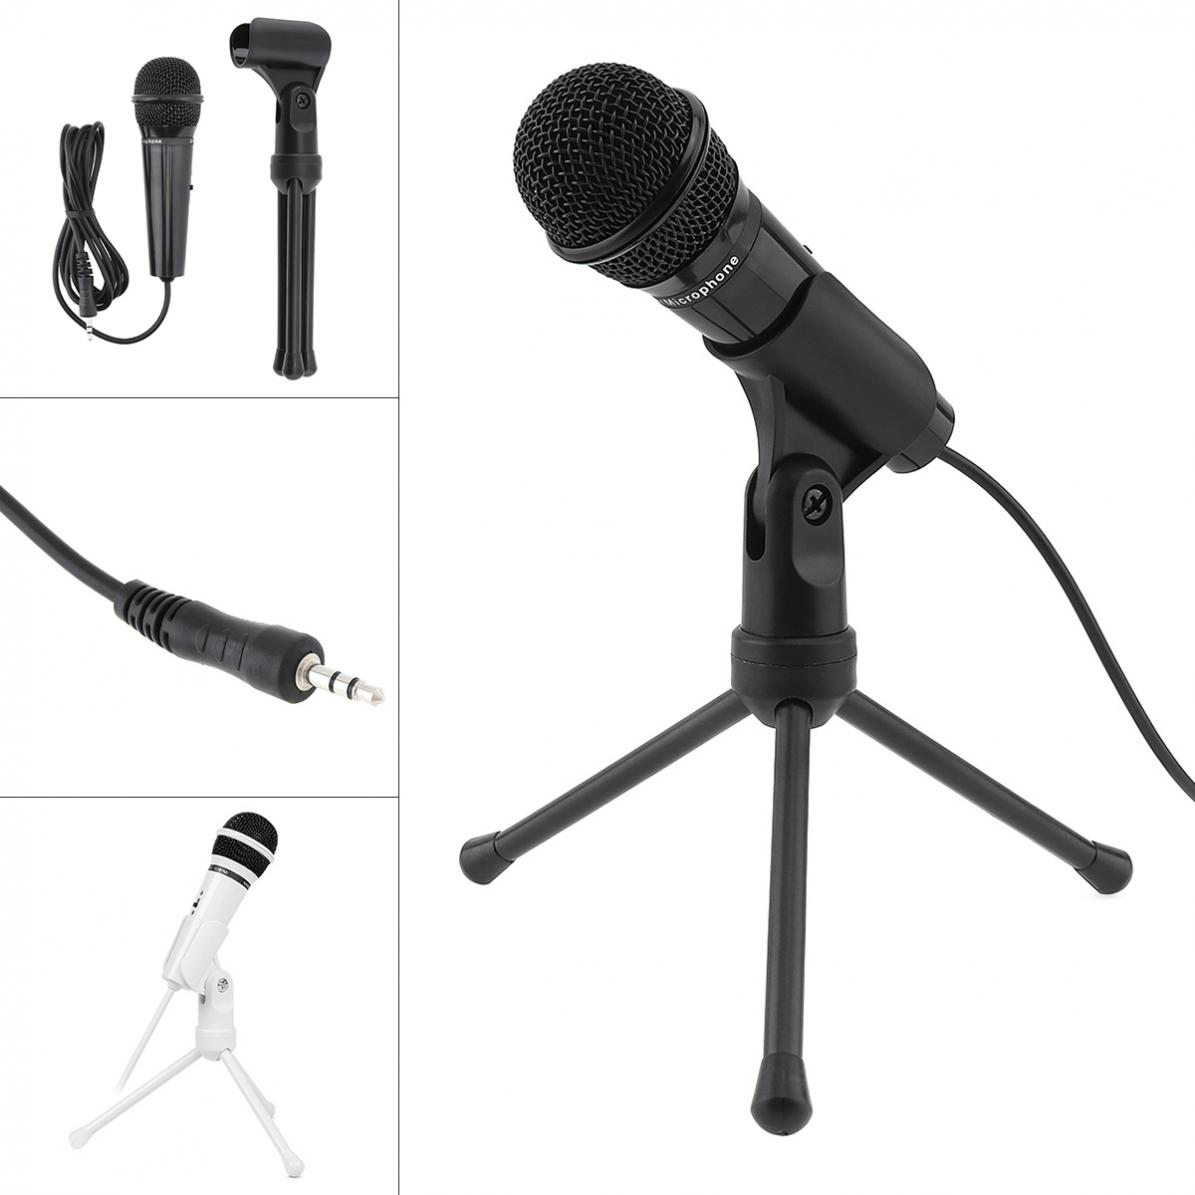 SF-910 Multifunctional Portable Computer Capacitive Microphone For Live Broadcast / Meeting / Speech With Detachable Bracket